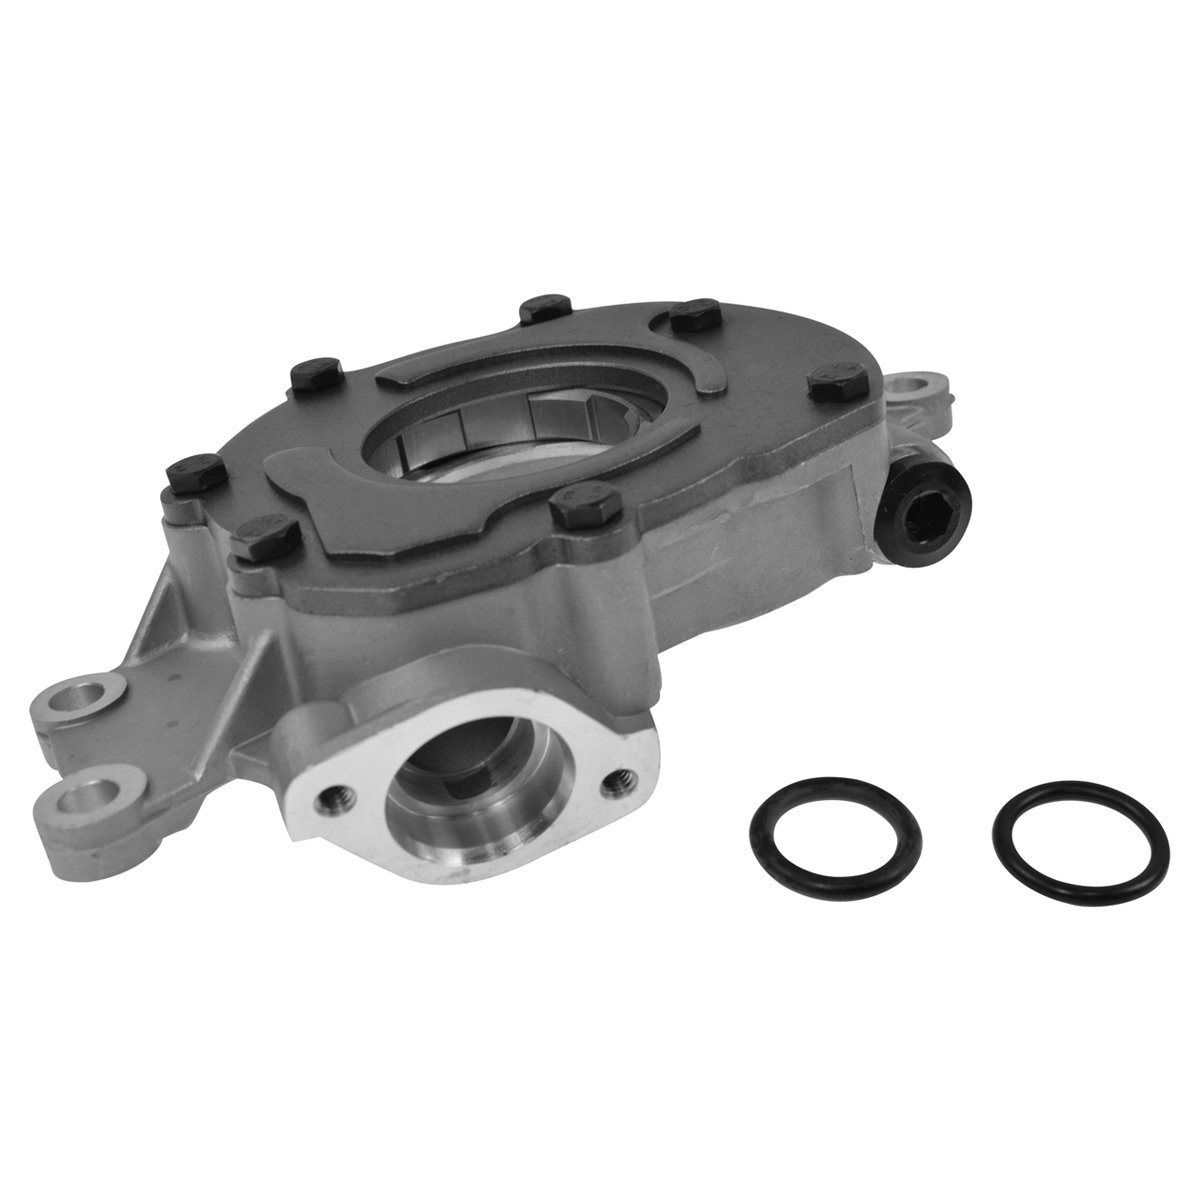 Engine Oil Pump for Buick Cadillac Chevy GMC Hummer Isuzu Pontiac Saab 1A Auto